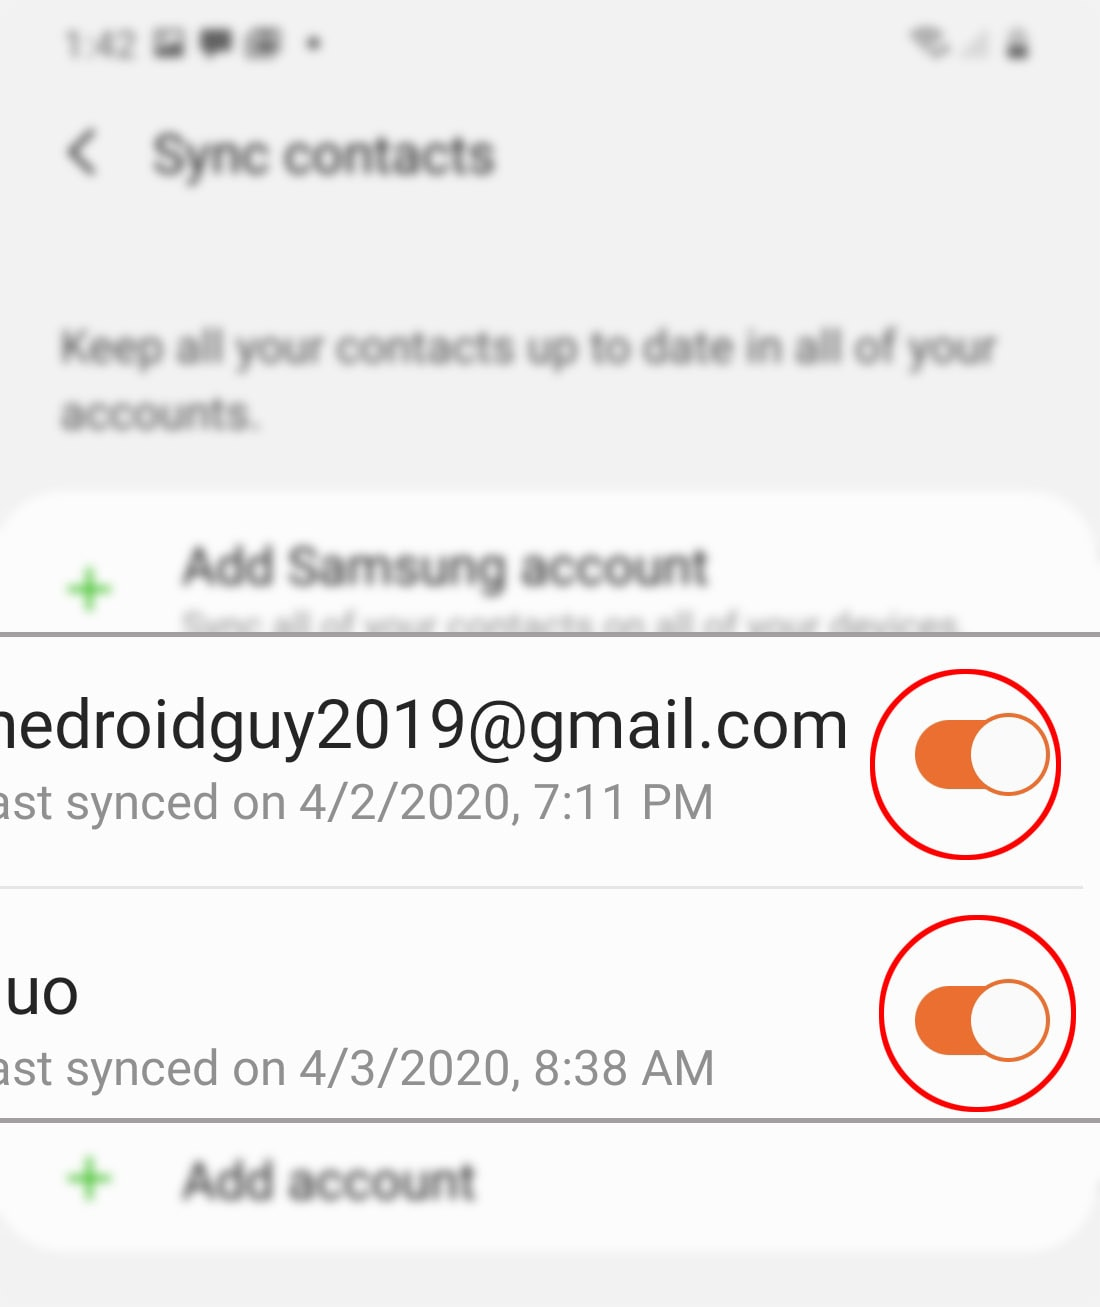 sync account contacts on galaxy s20 - select account contacts to sync